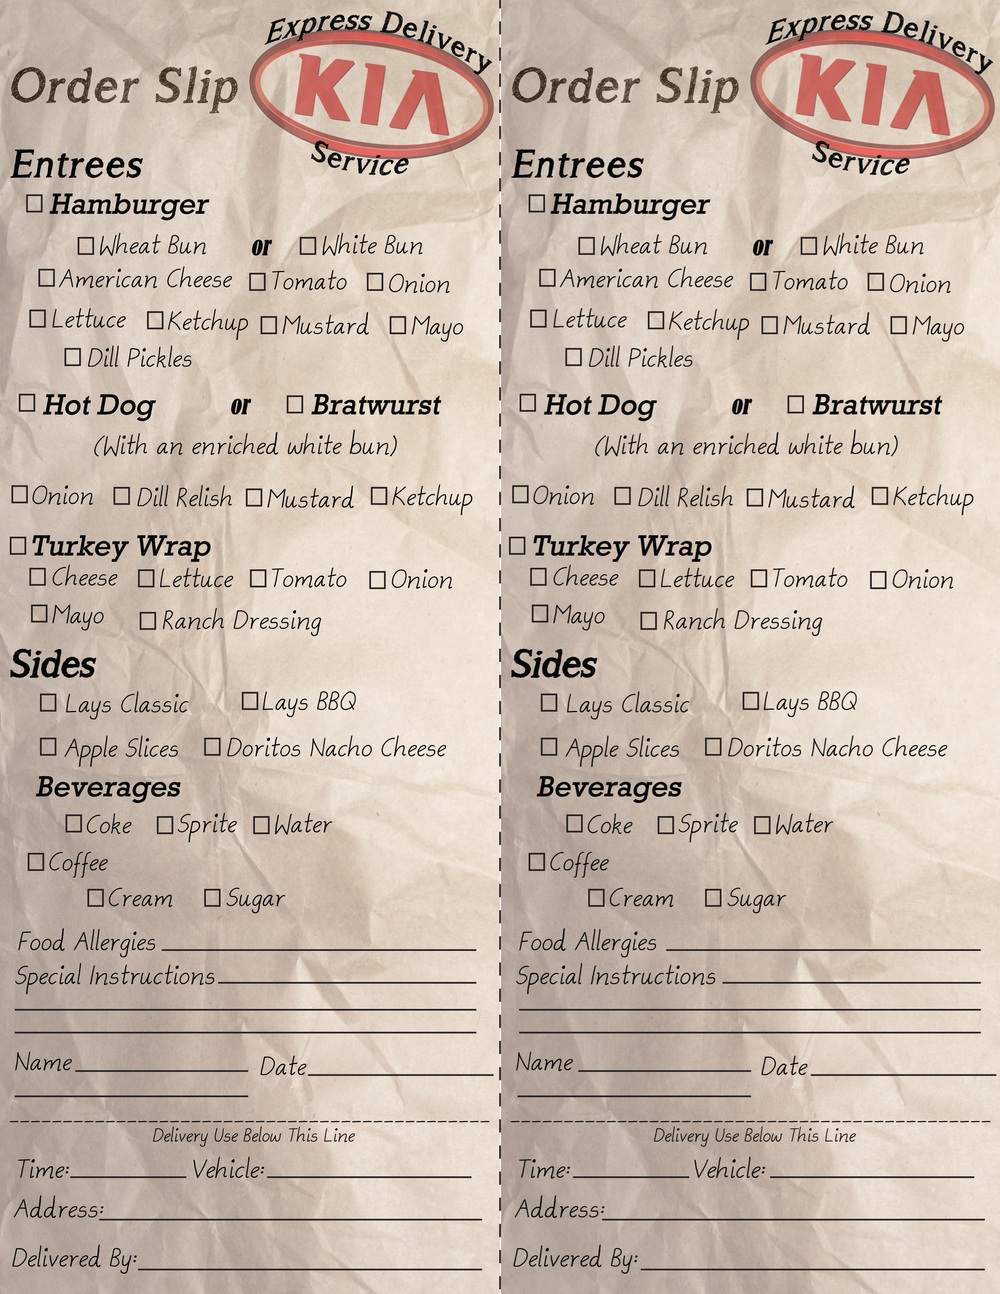 Service Menu used for local dealership